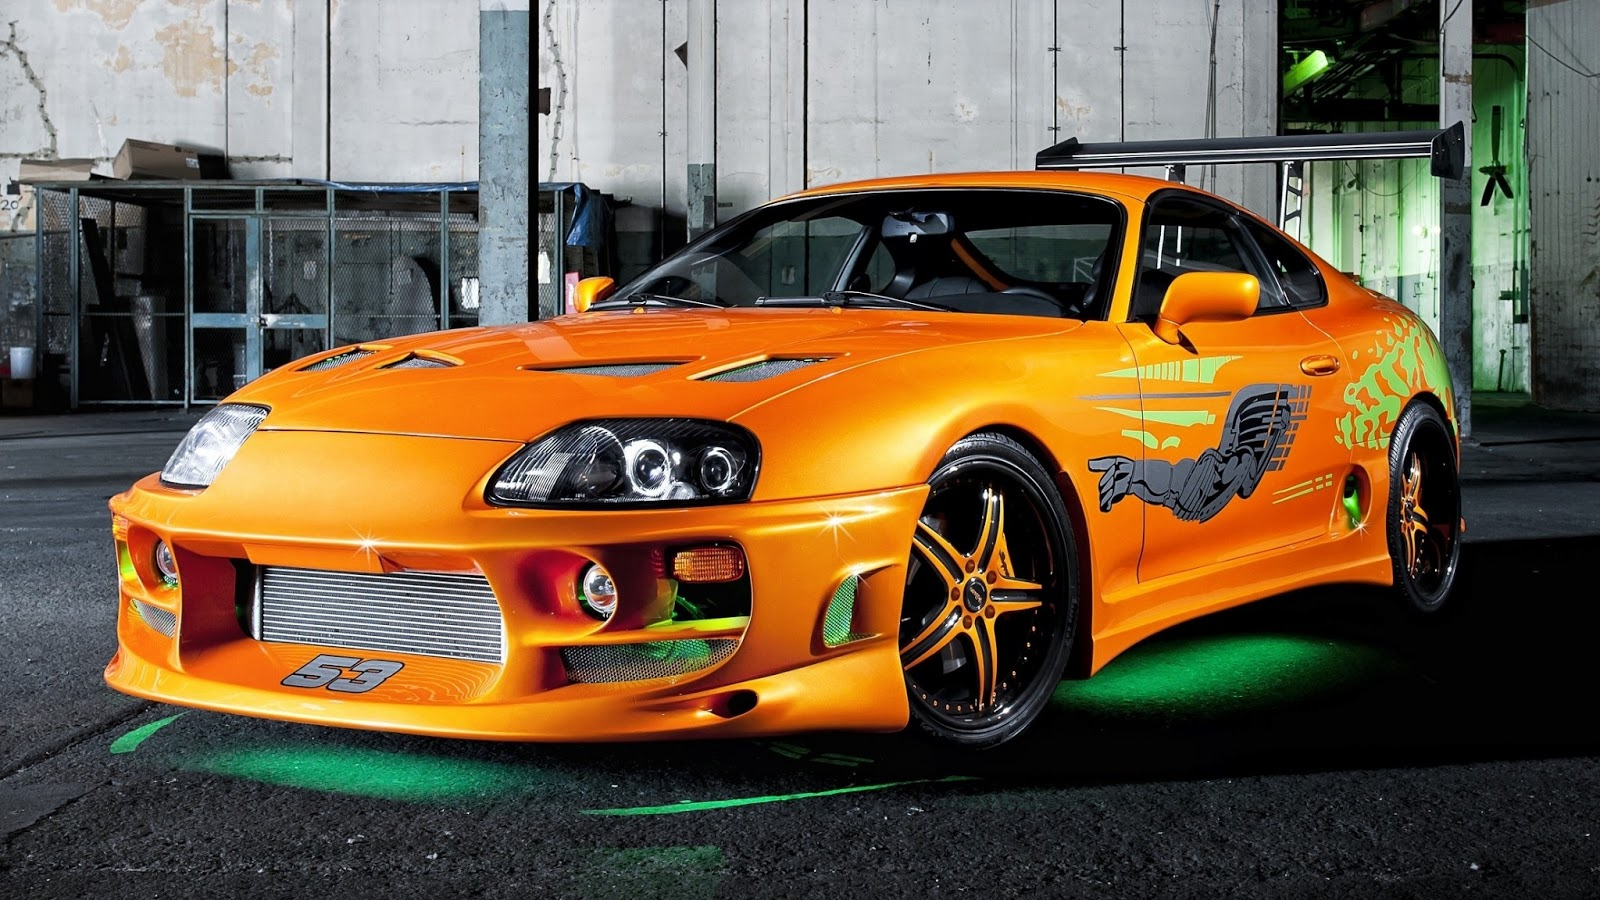 Toyota Supra Turbo Brian The Fast And The Furious